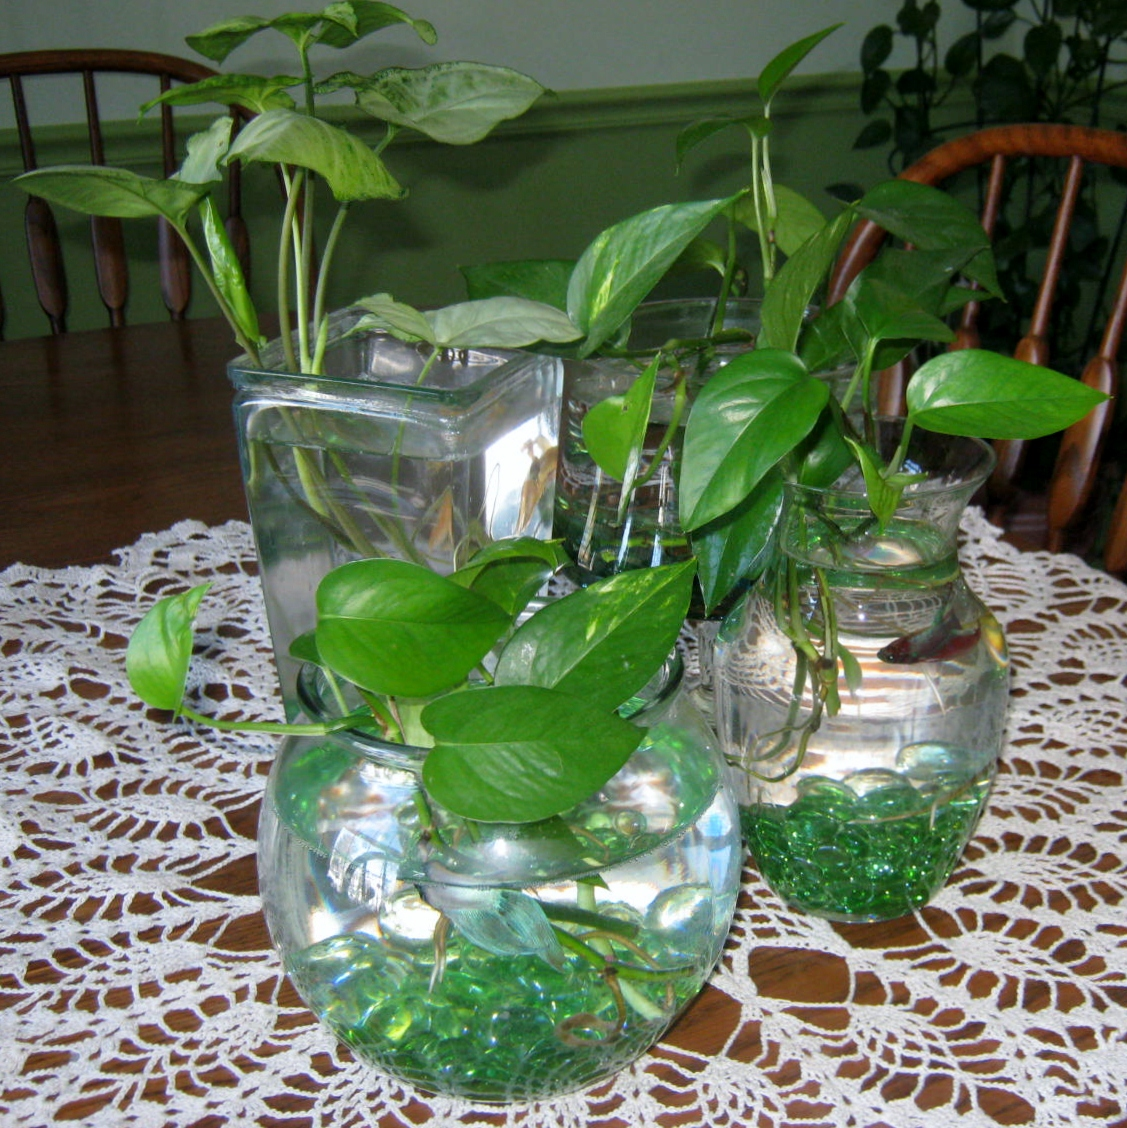 Wp images betta fish post 11 for Betta fish plant